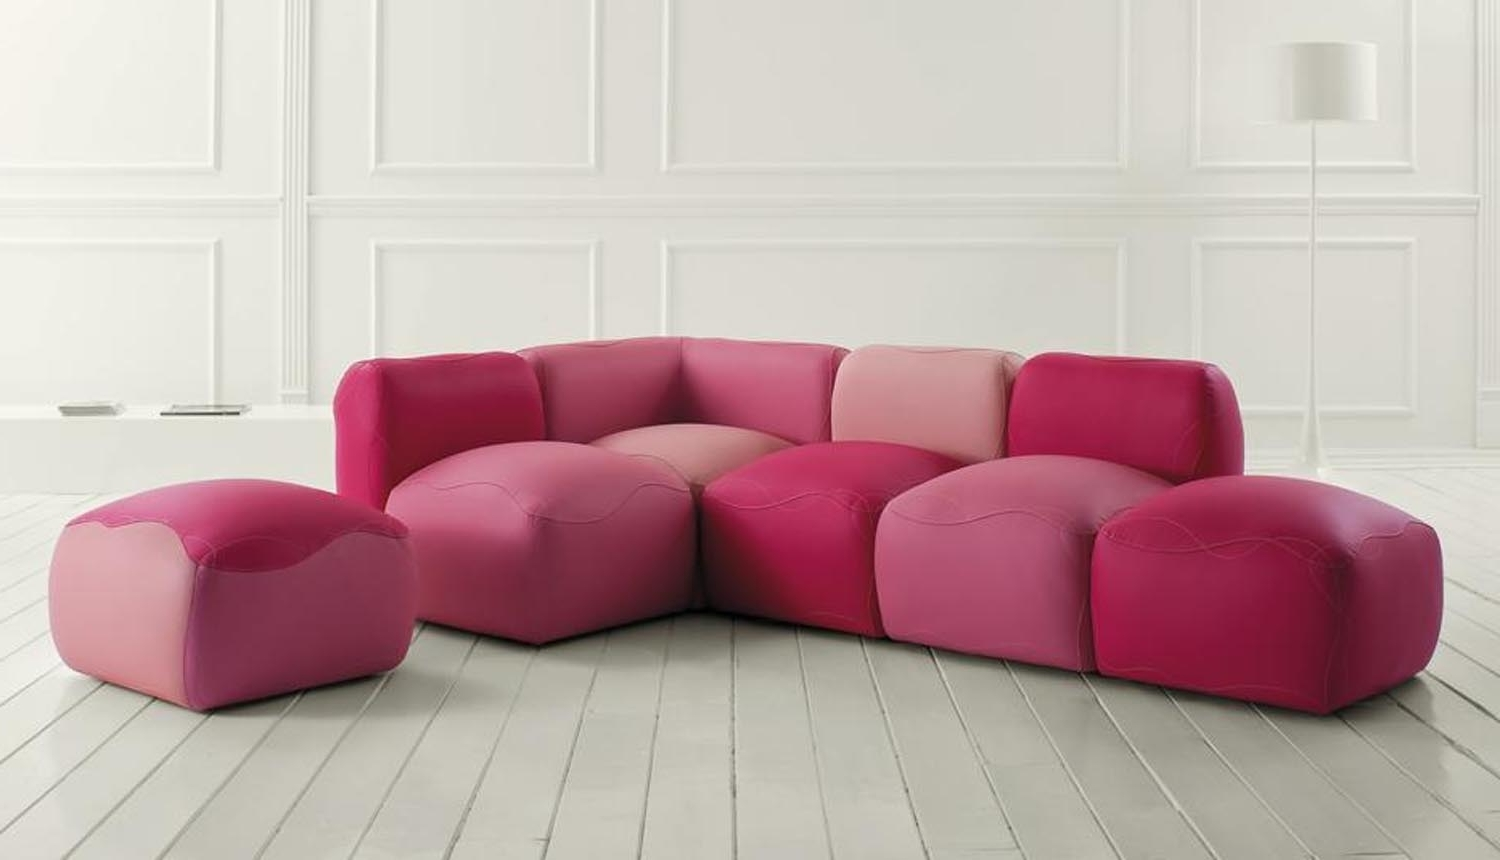 Current Fun And Unique Sofa Designs Pertaining To Unusual Sofas (View 5 of 20)